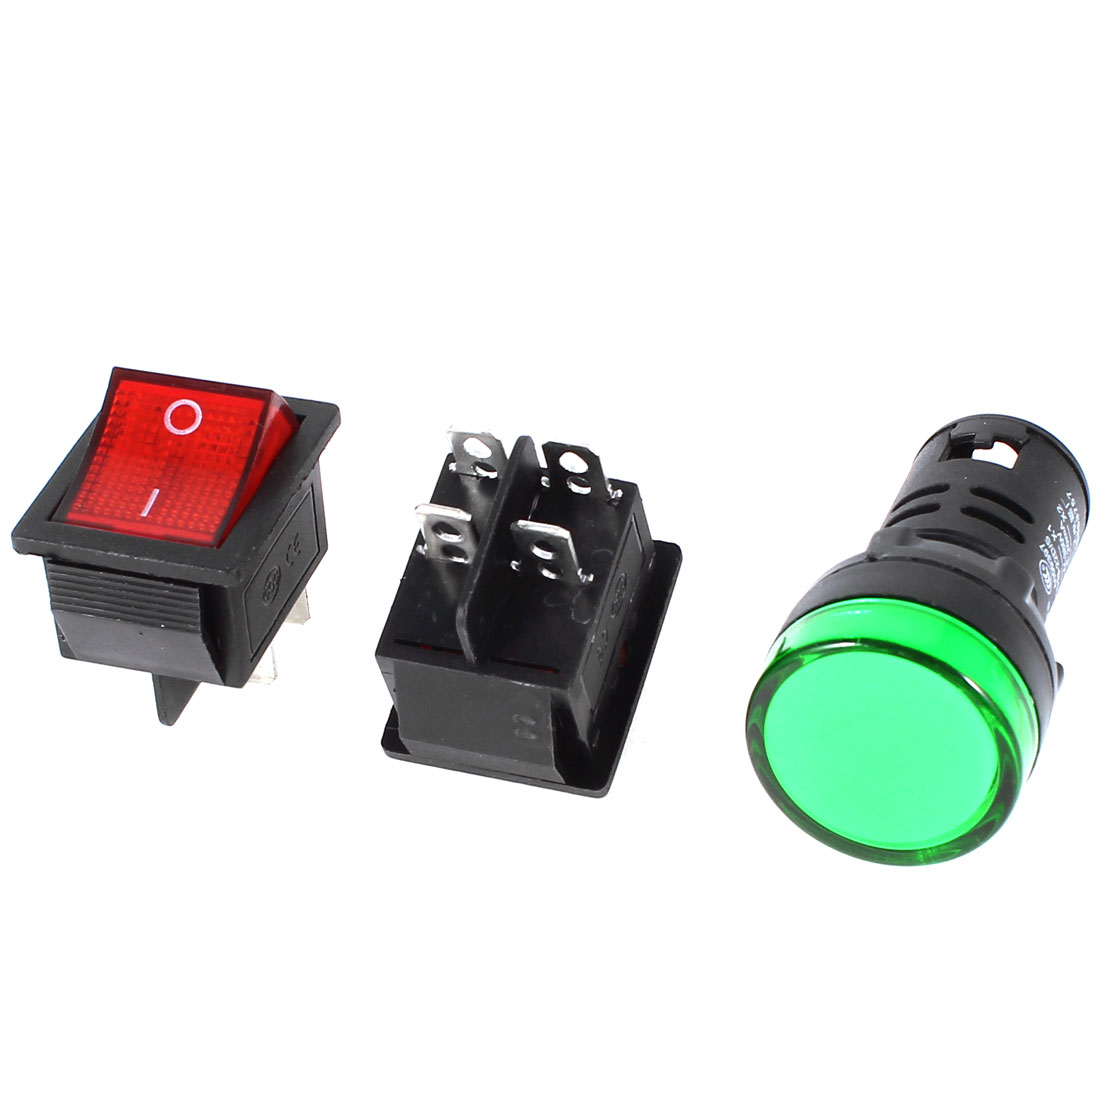 2x KCD4 DPST Red Light Rocker Switch + 1x AD16-22D/S Green Pilot LED Lamp AC 380V